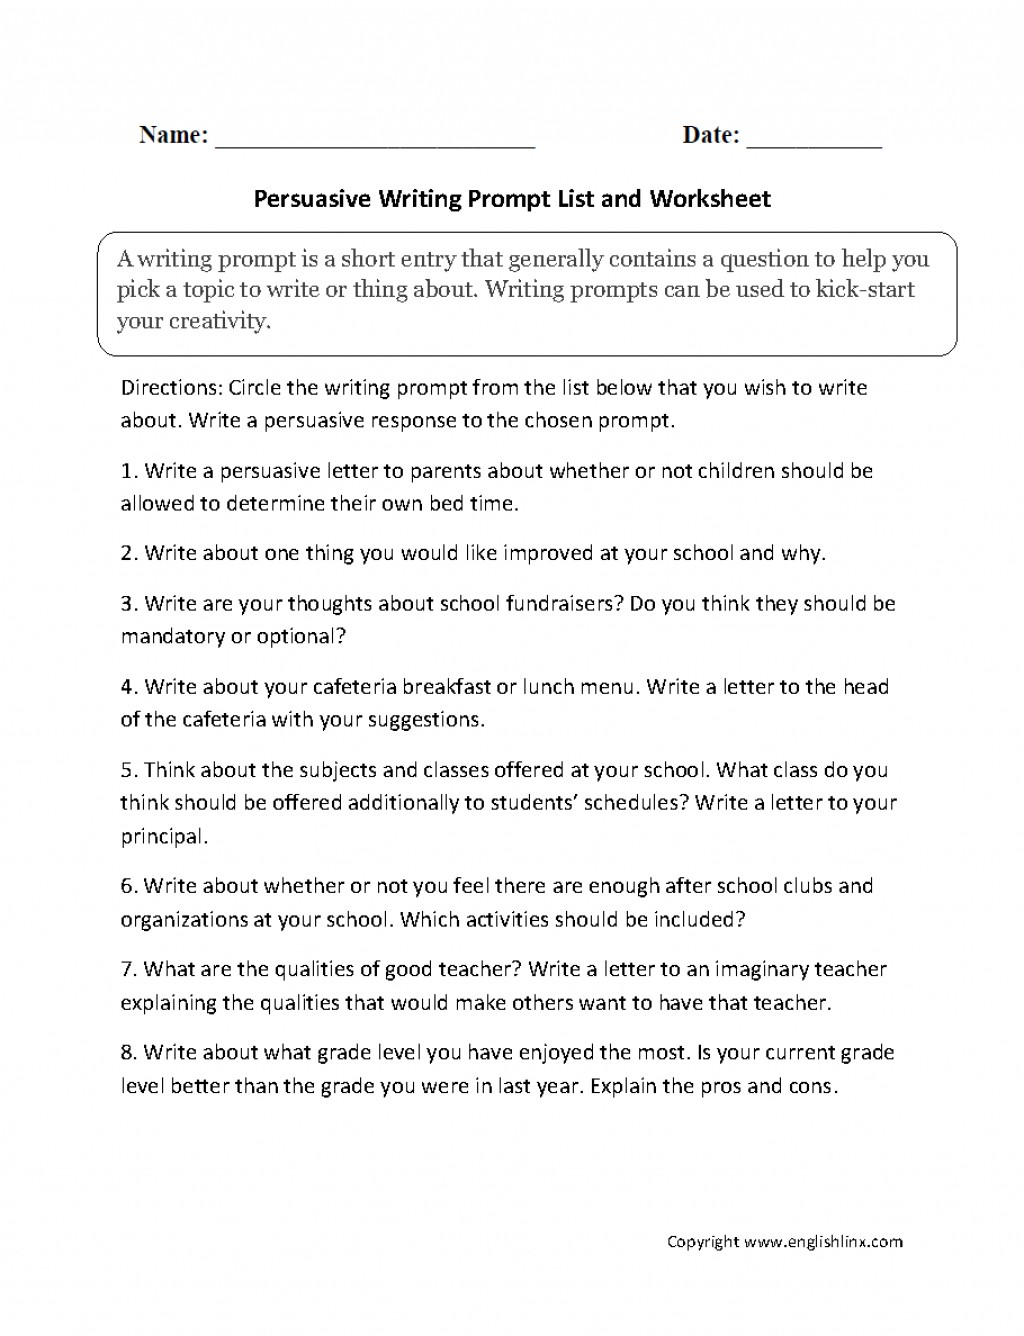 005 Persuasive Writing Prompt List Essay Prompts Formidable Narrative For Middle School 5 Paragraph 5th Grade Large